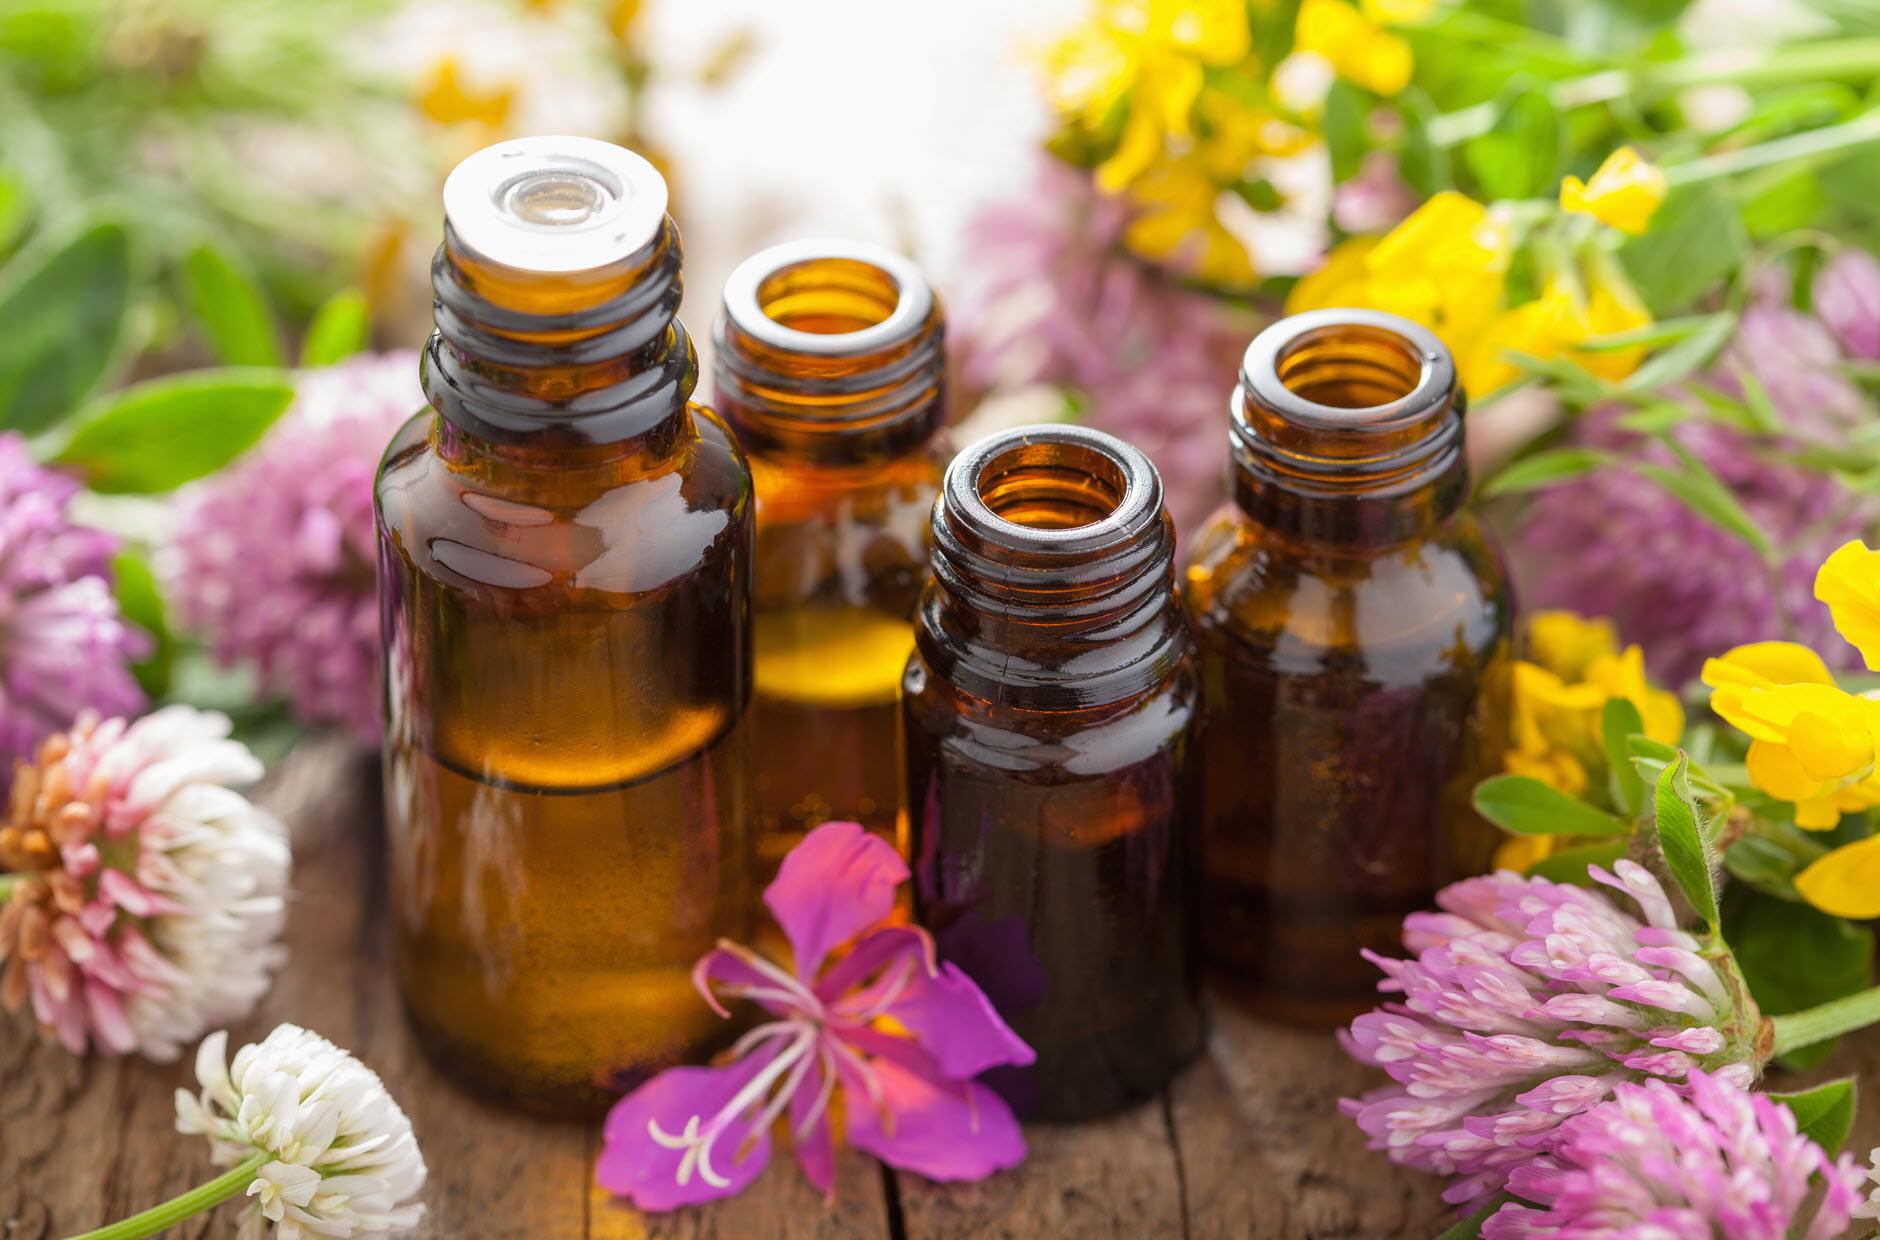 Different kinds of essential oils